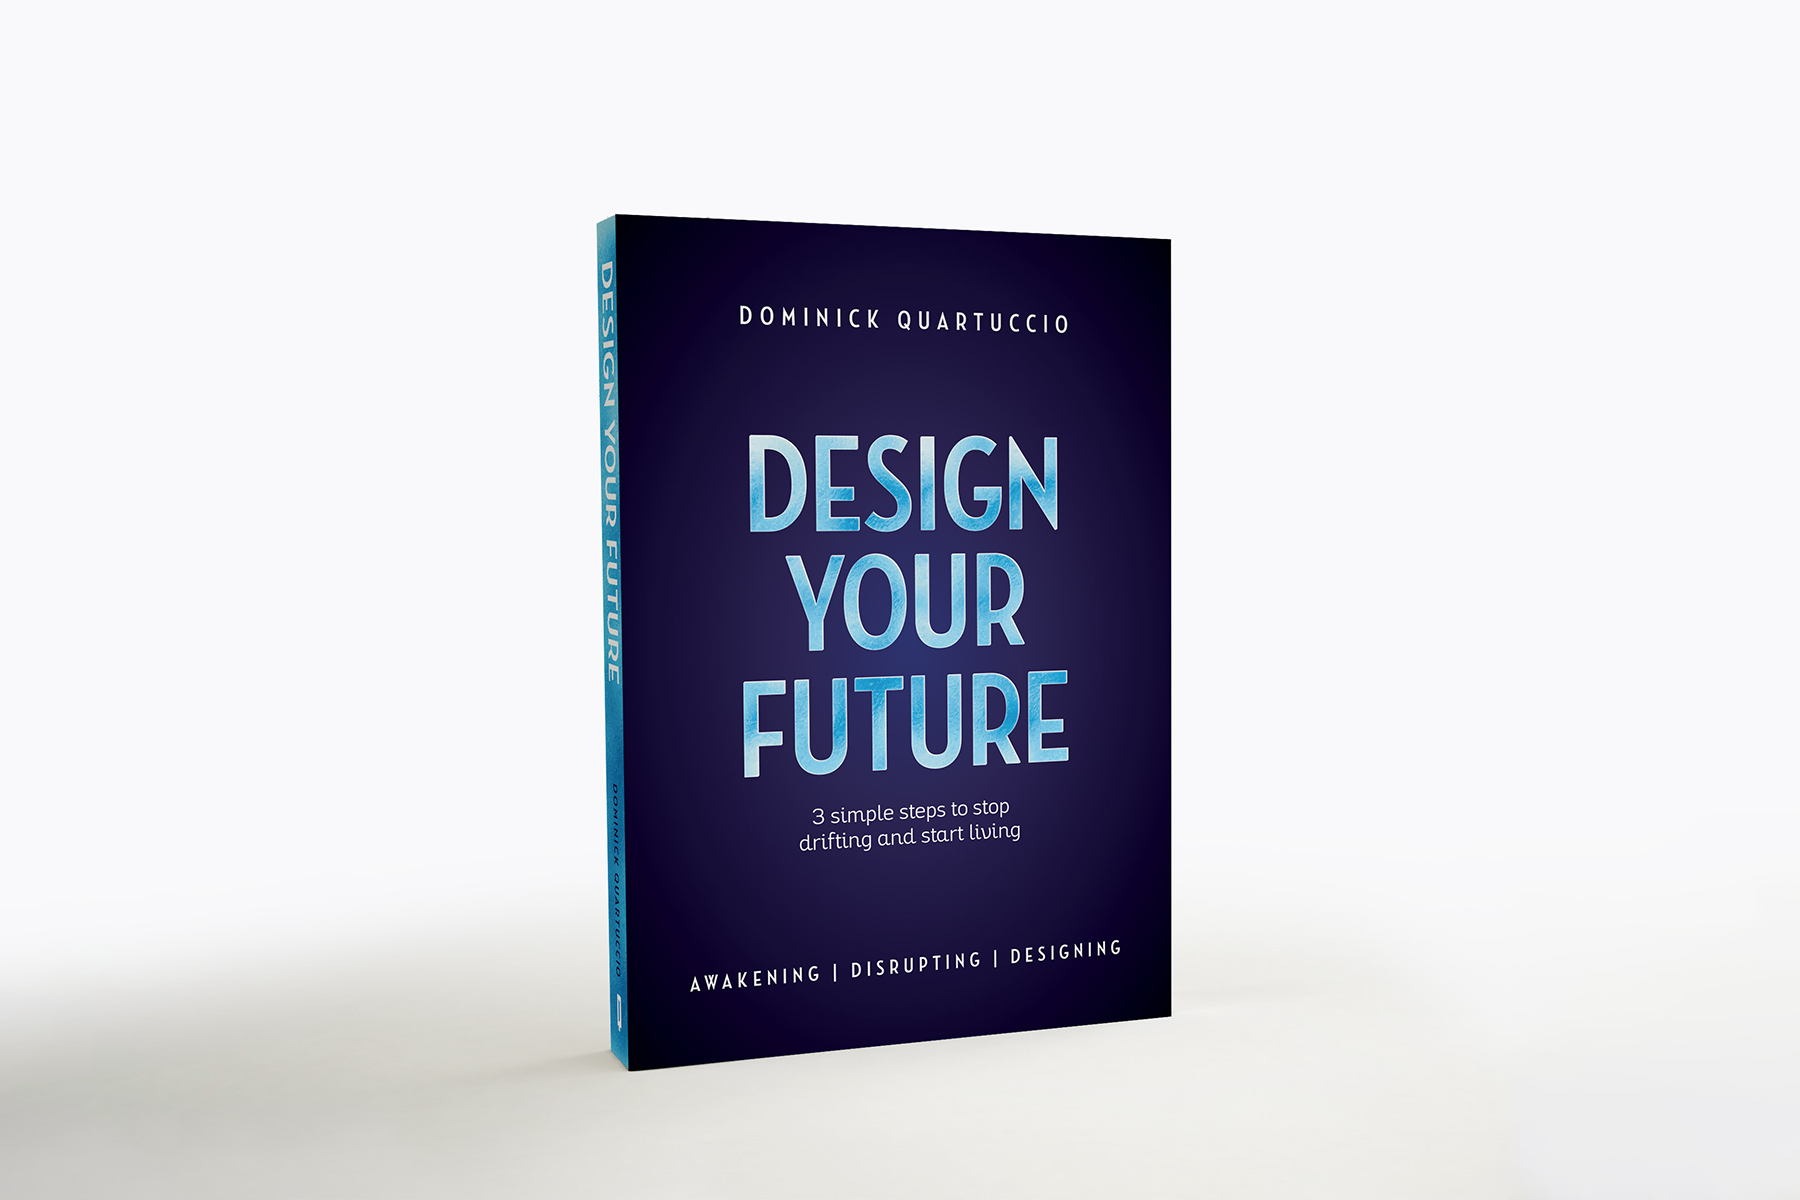 Read the book. - Stop Drifting and Start Living:Dominick's Book - Design Your Future - teaches you 3 simple steps to stop drifting and take command of your life.